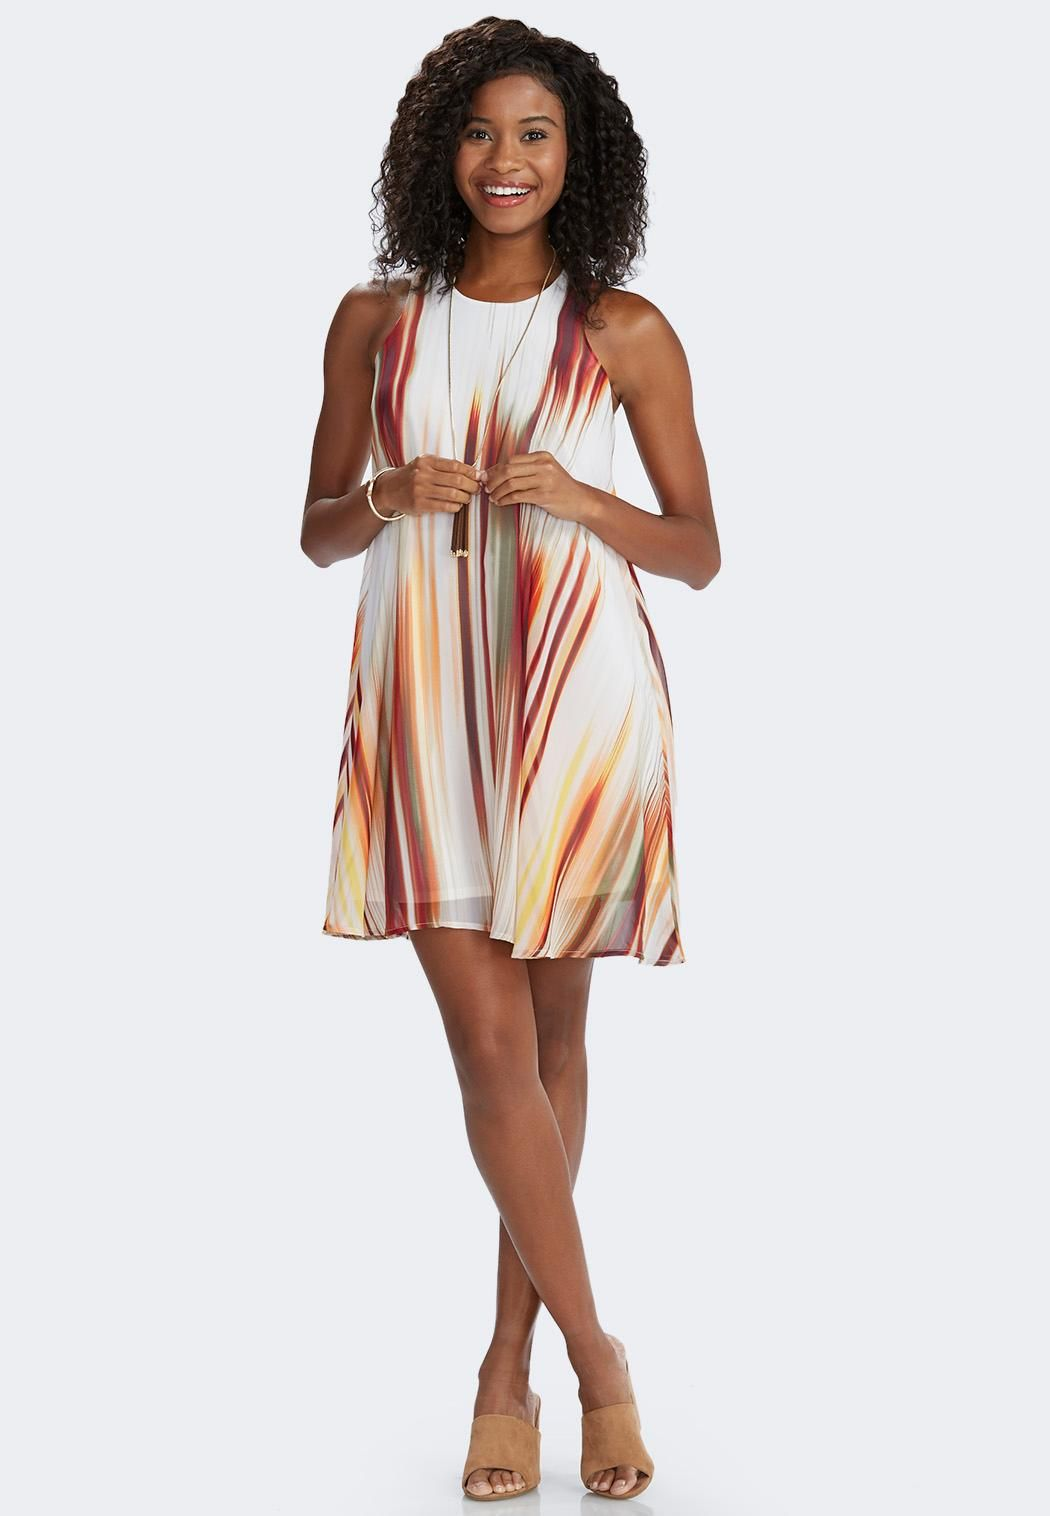 Splash into the season with spice with this stunning swingdress